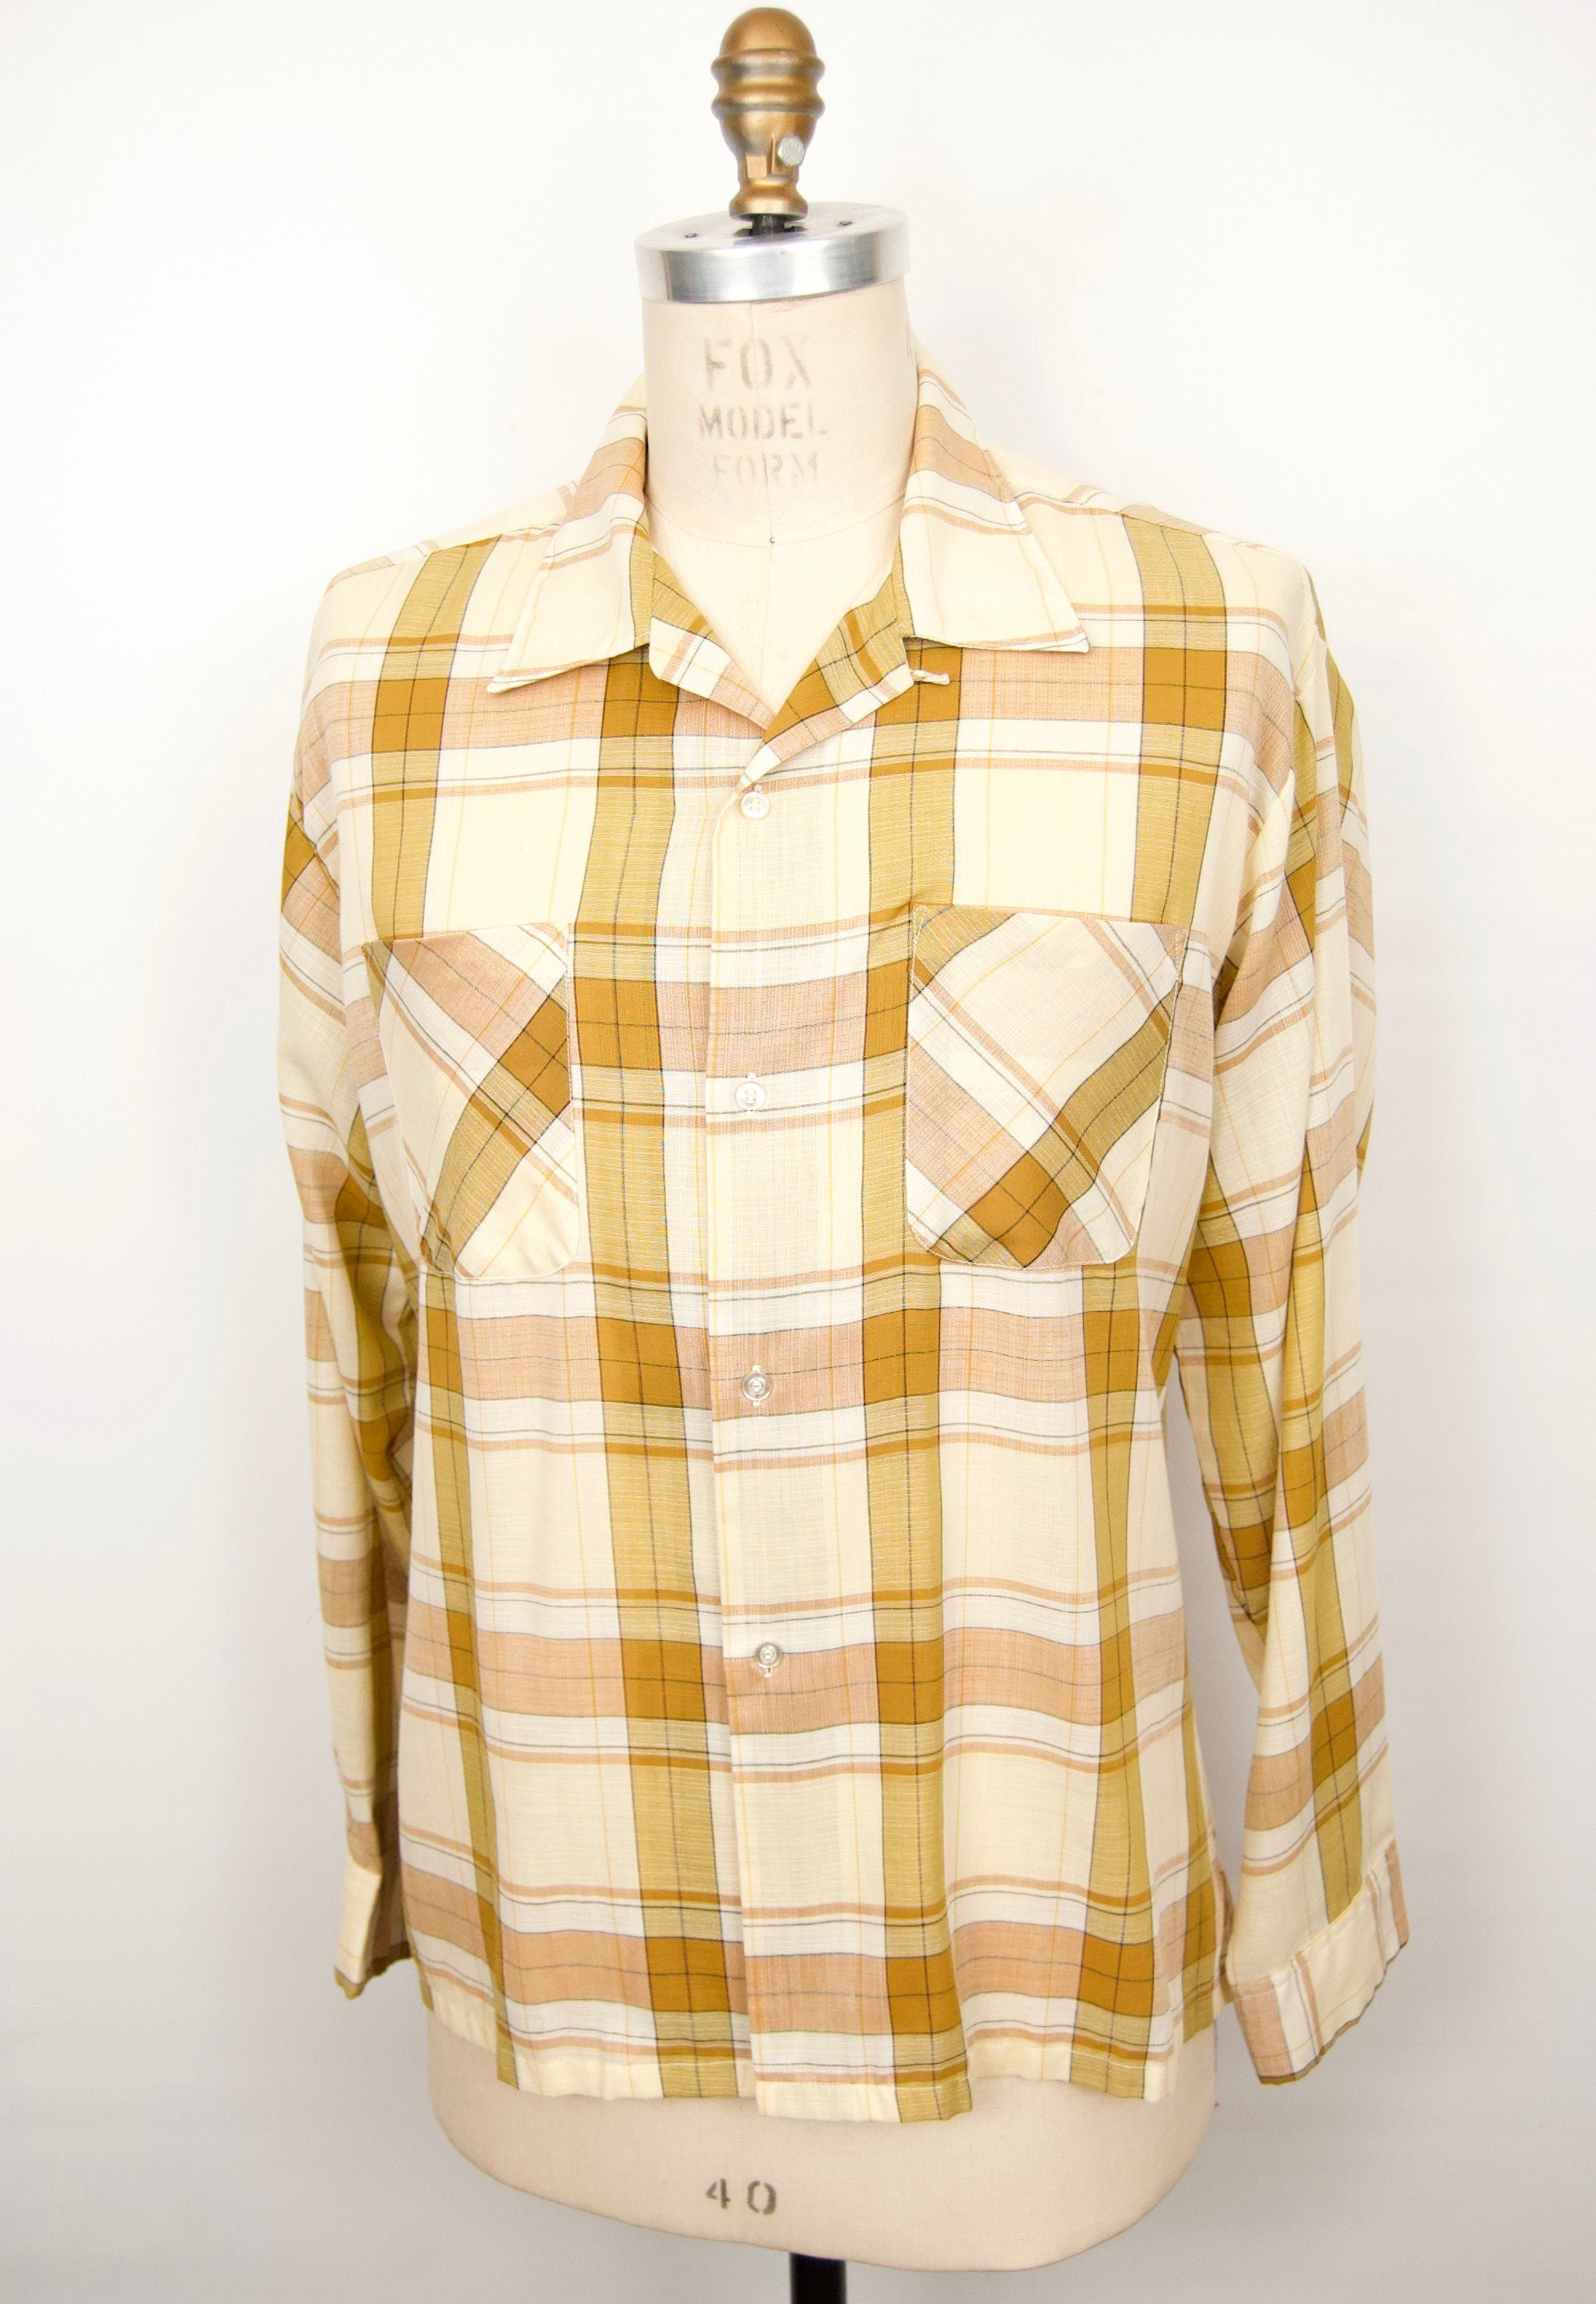 1950s Men's Ties, Bow Ties – Vintage, Skinny, Knit 1950S Plaid Camp Shirt with Loop Collar, Convertible LapelGolden Yellow Ochre  Light Green-Ish Khaki Check Pattern Mens Extra Large $72.00 AT vintagedancer.com